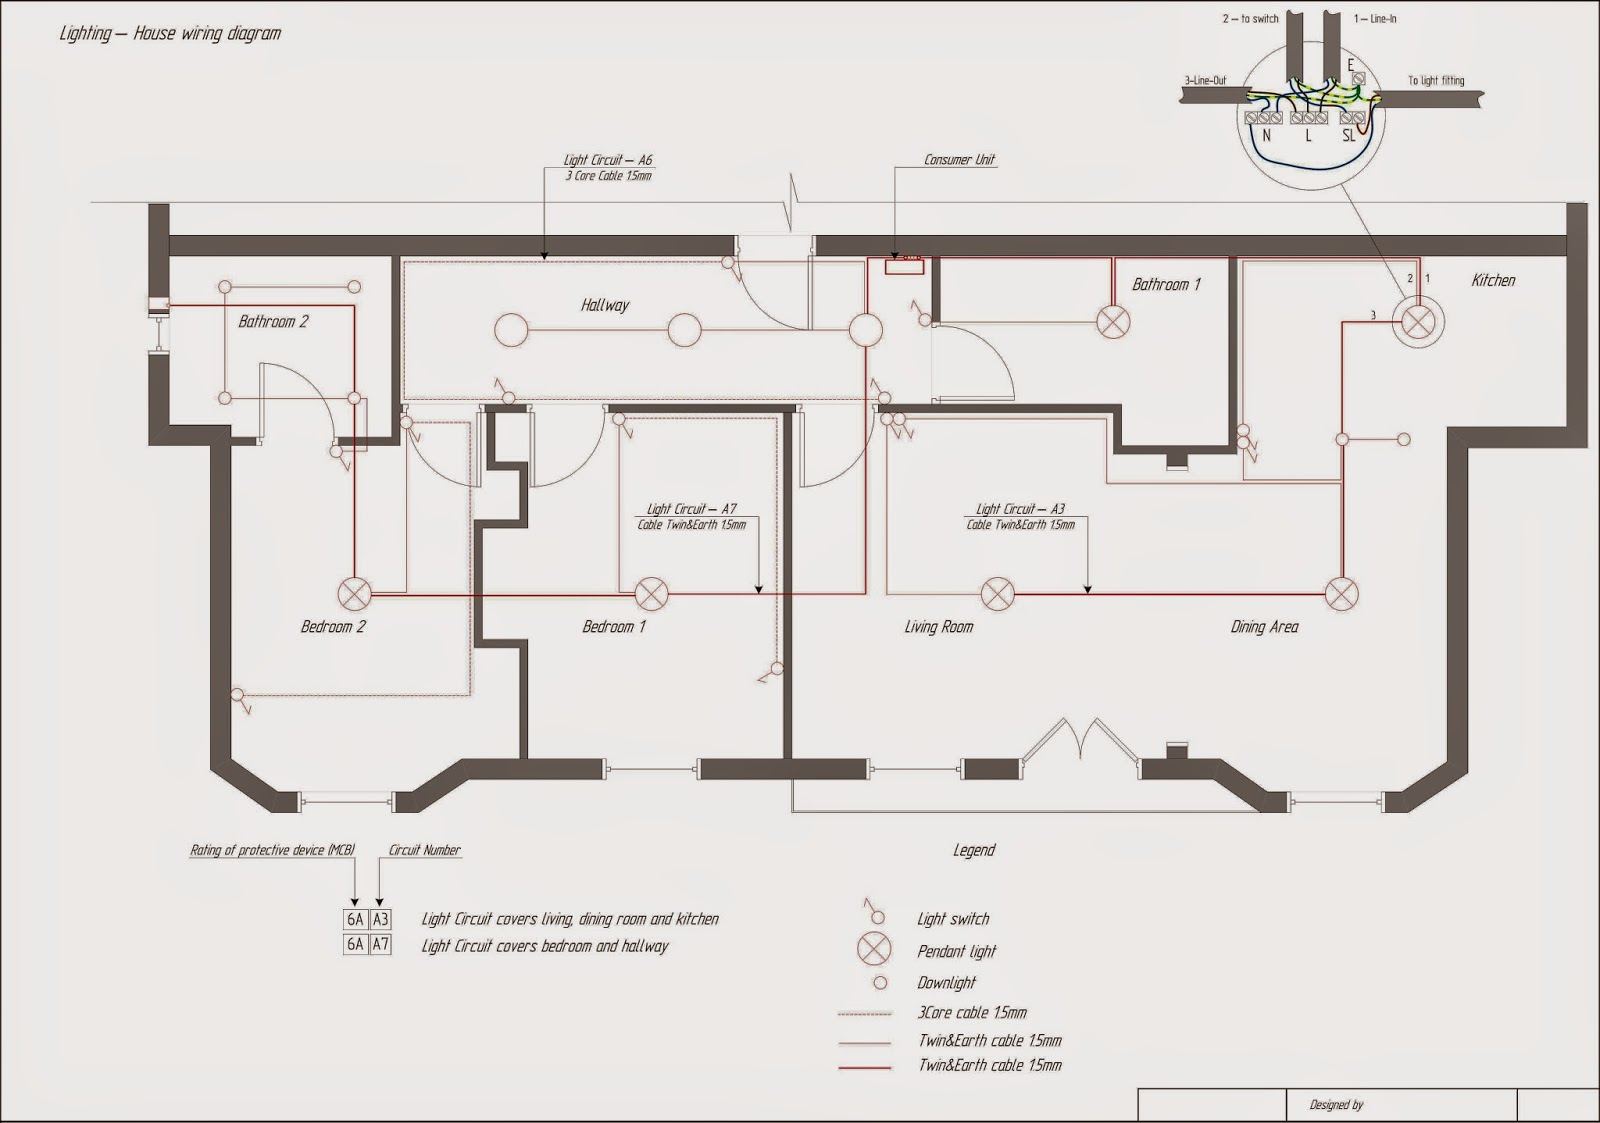 House Wiring Diagram With